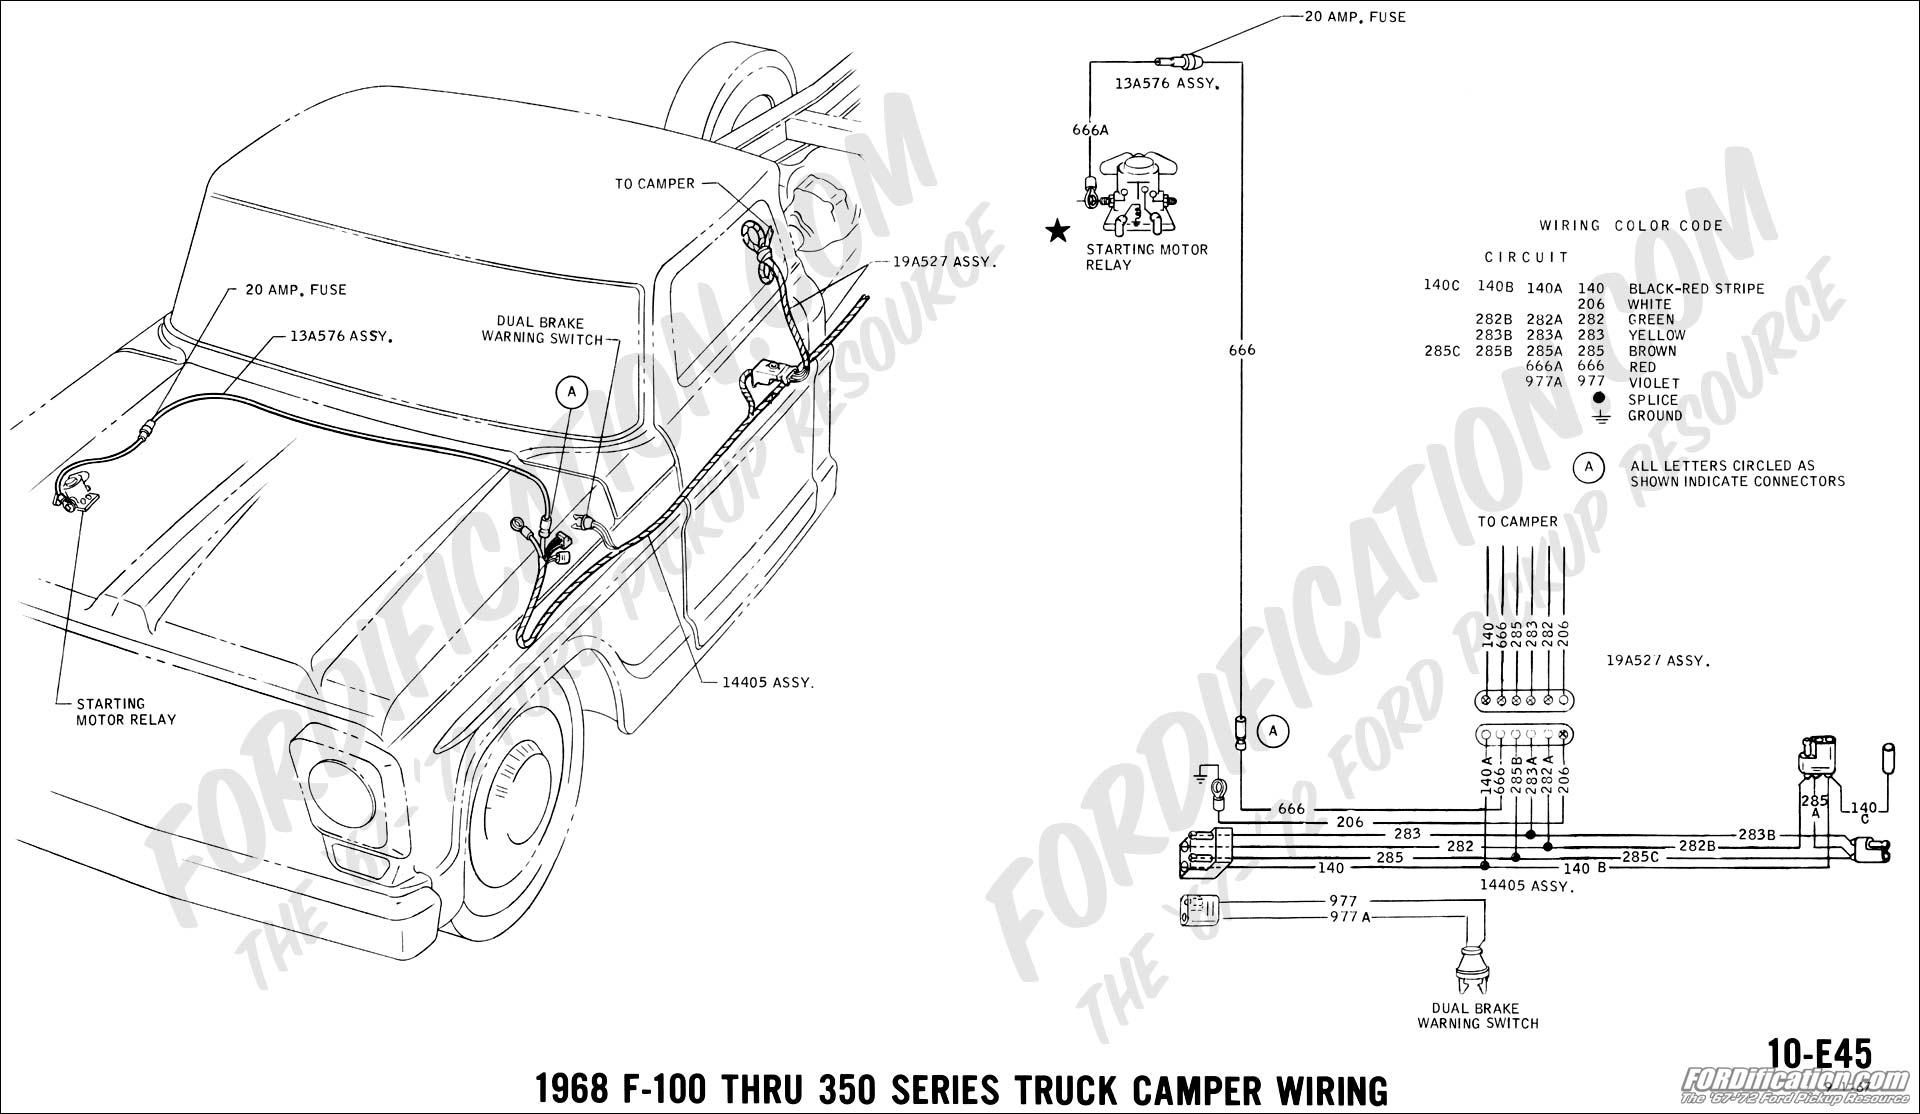 68 47 ford truck technical drawings and schematics section h wiring haulmark enclosed trailer wiring diagram at reclaimingppi.co